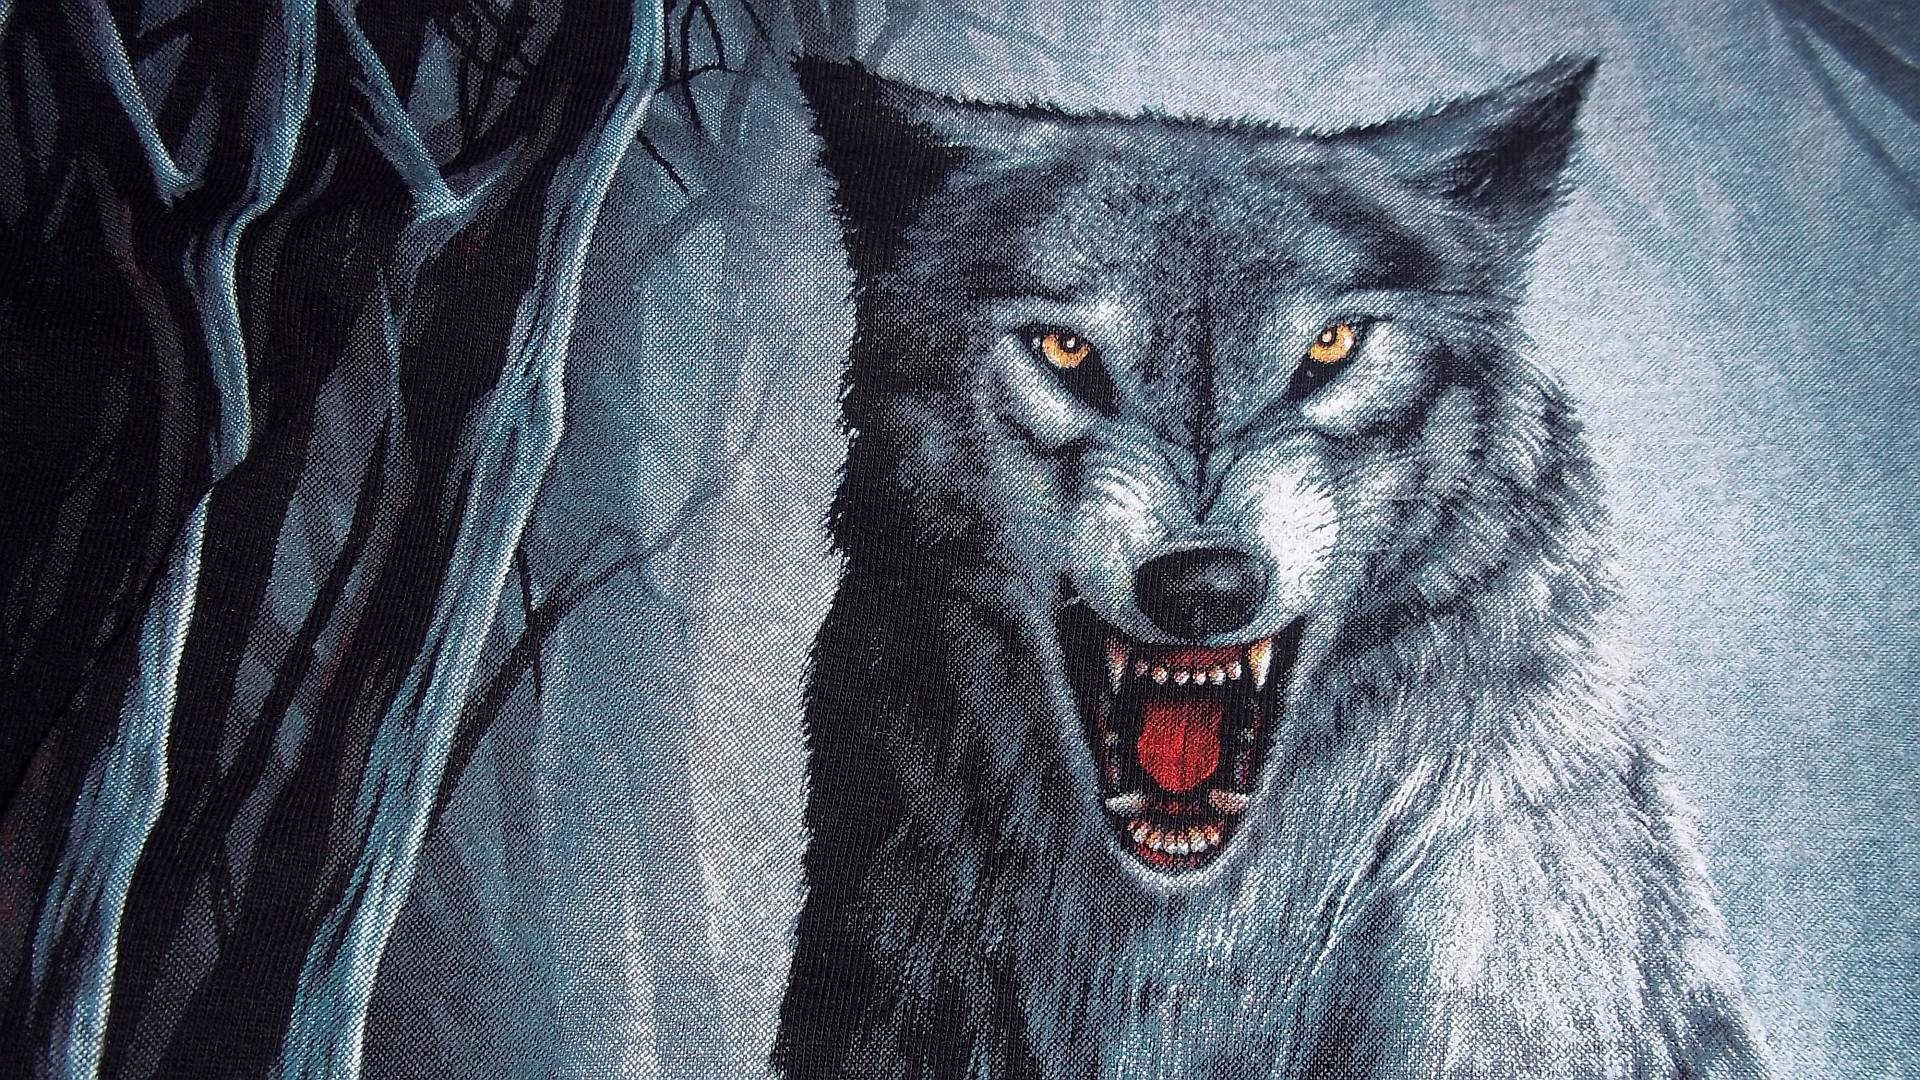 1920x1080 Free Wolf Backgrounds - Wallpaper Cave Wolves Wallpapers Free - Wallpaper  Cave ...